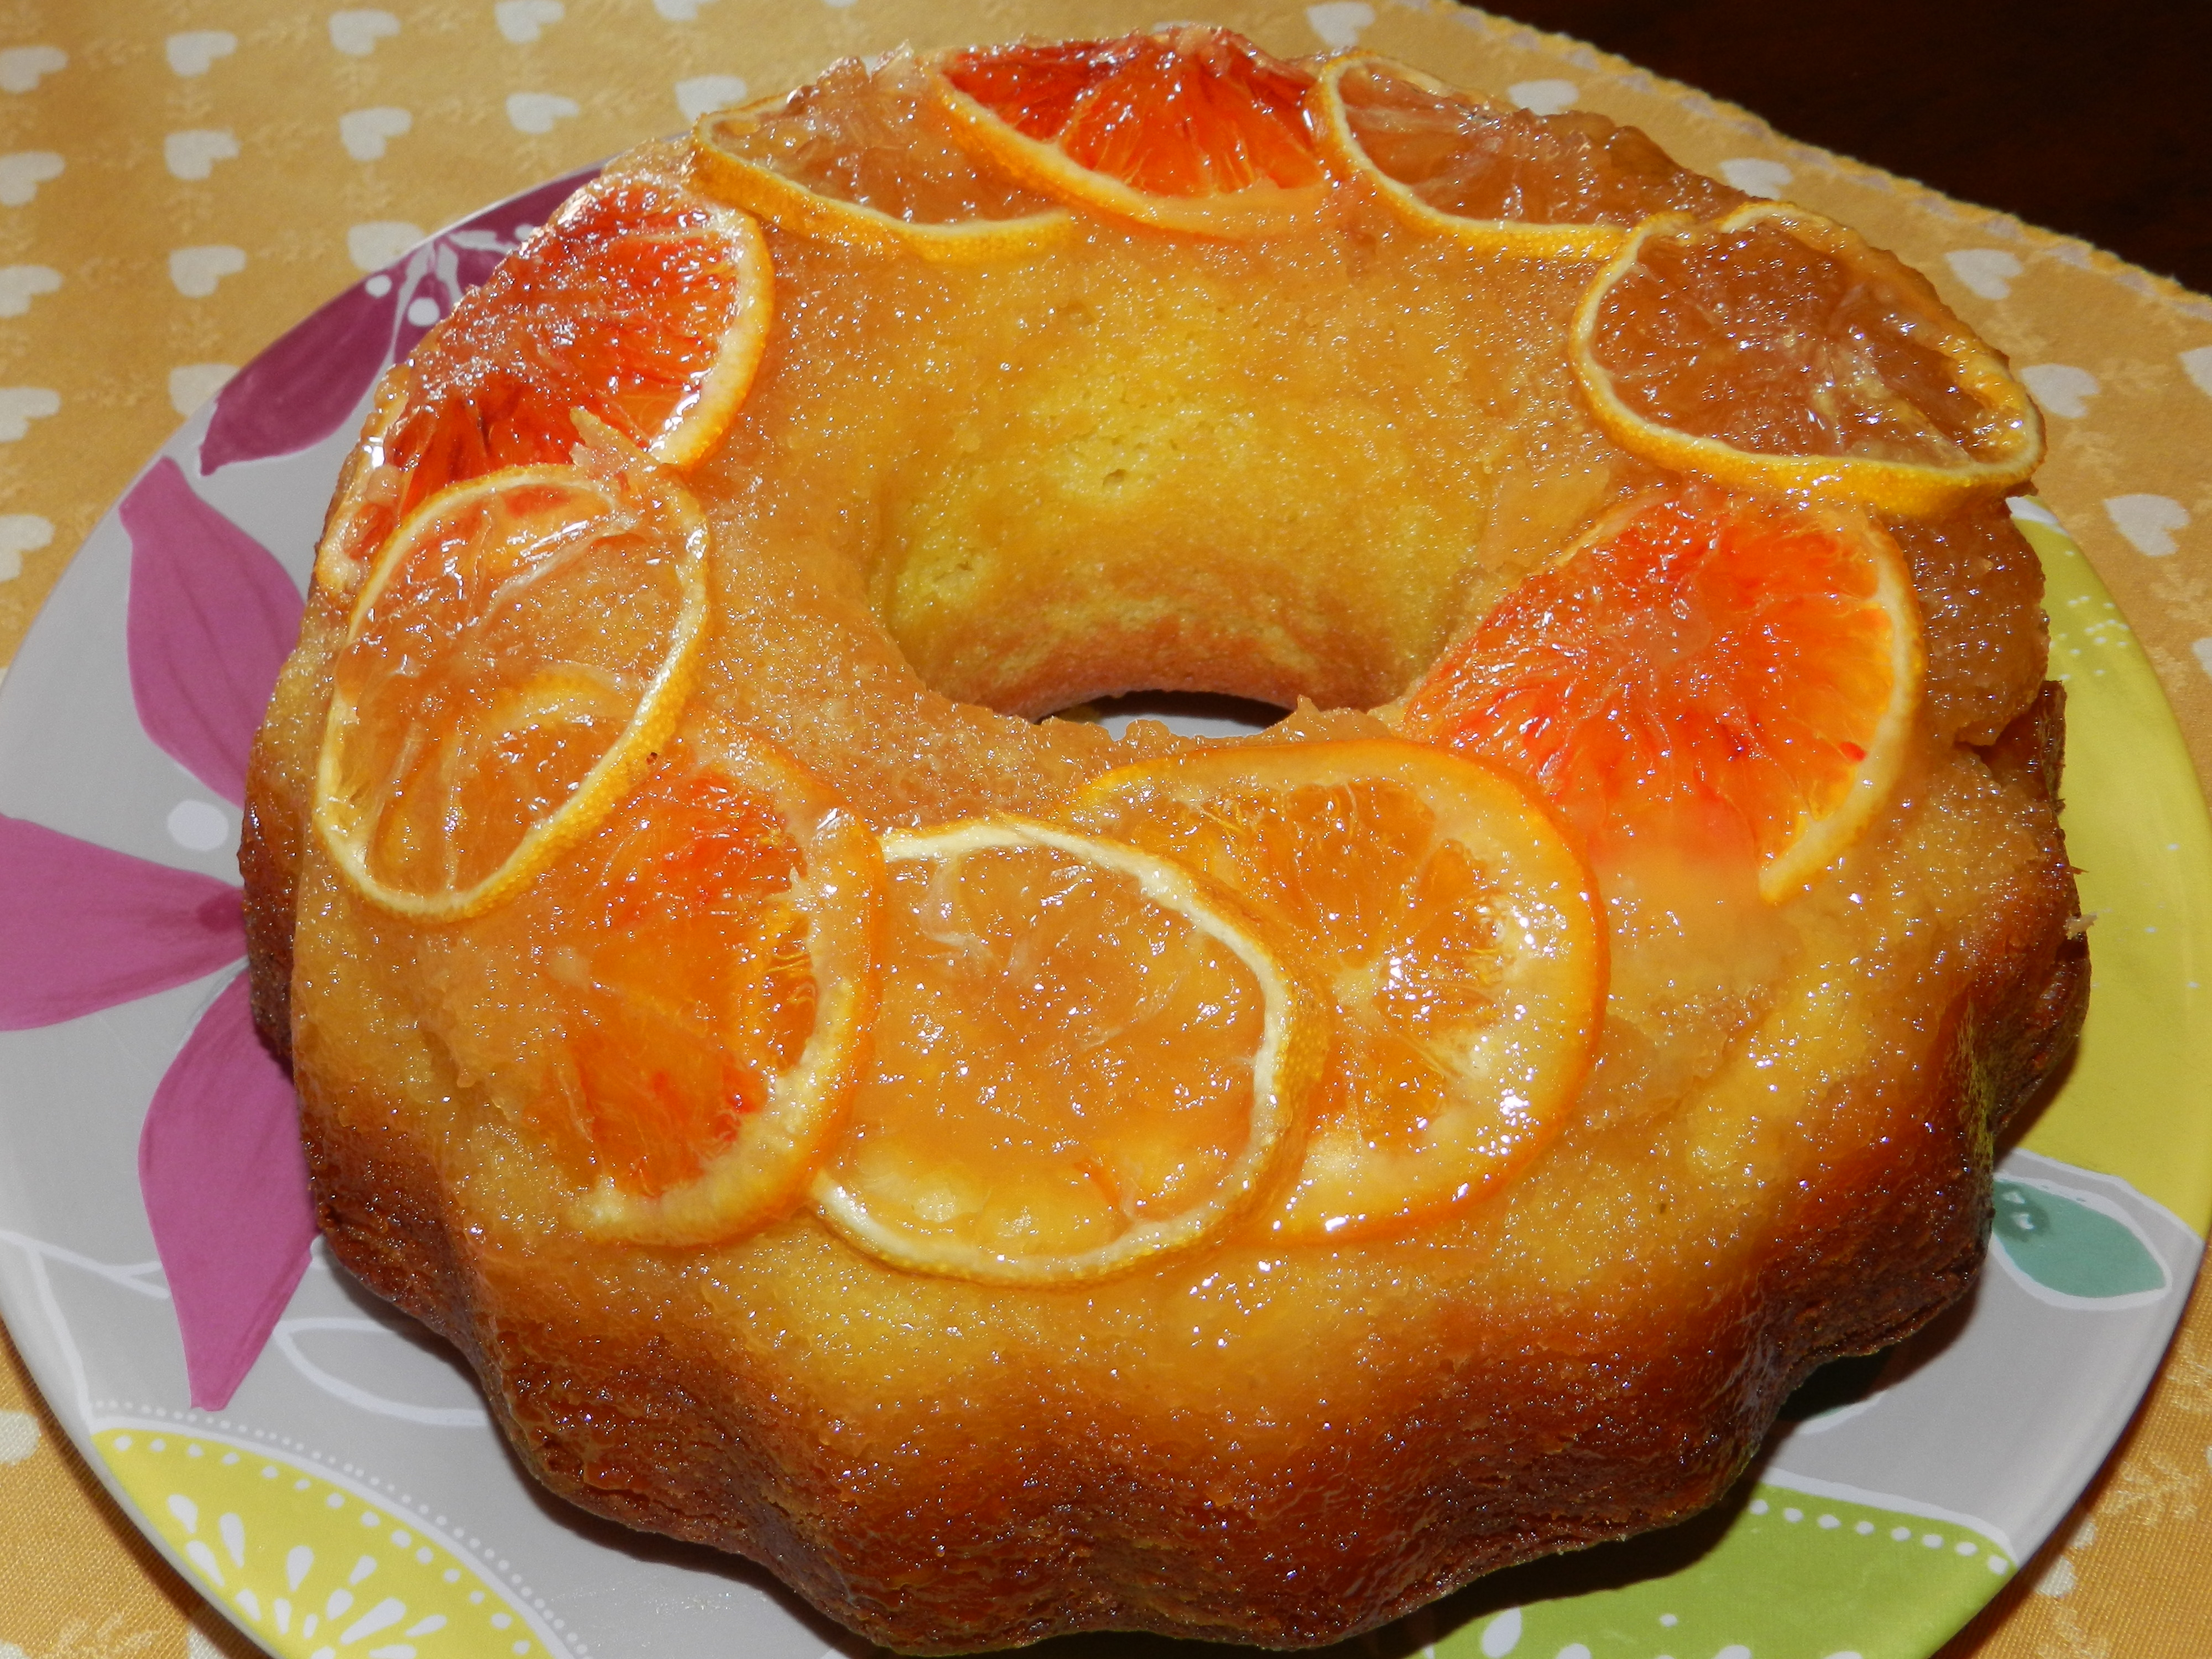 Winter Citrus Upside Down Cake – Torta speziata agli agrumi Re-Cake 2.0